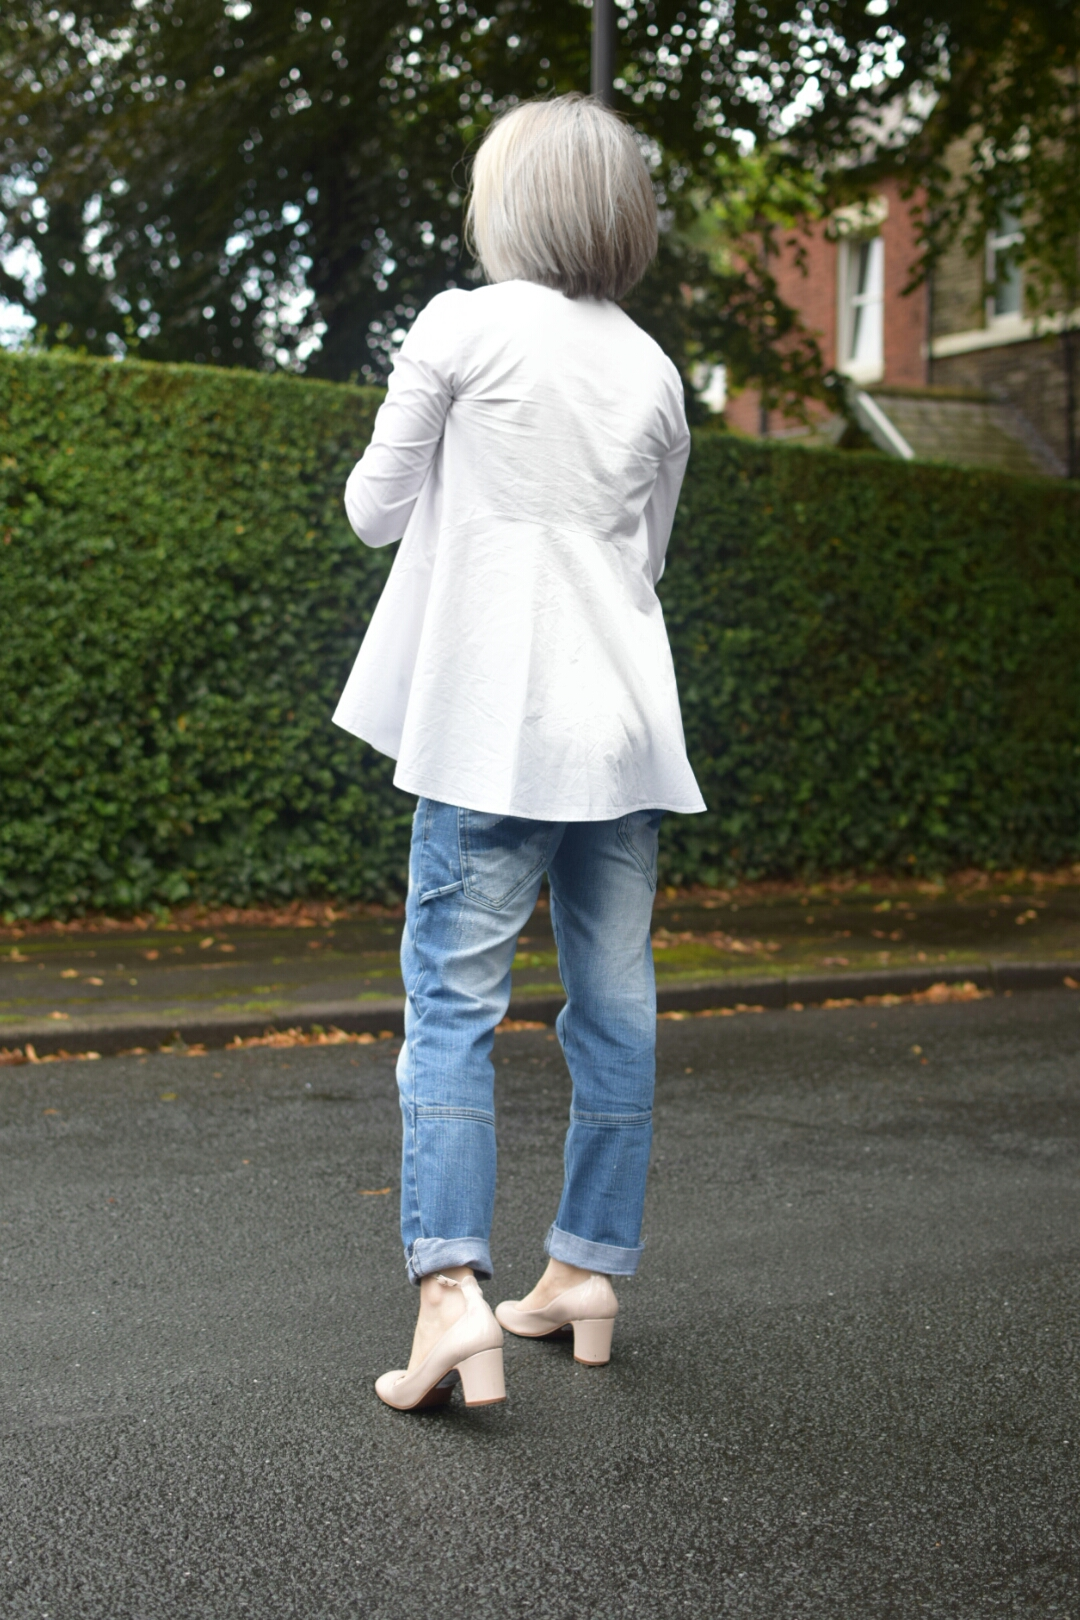 And Other Stories White shirt, Next MOM Jeans and Topshop Nude Mary Janes.